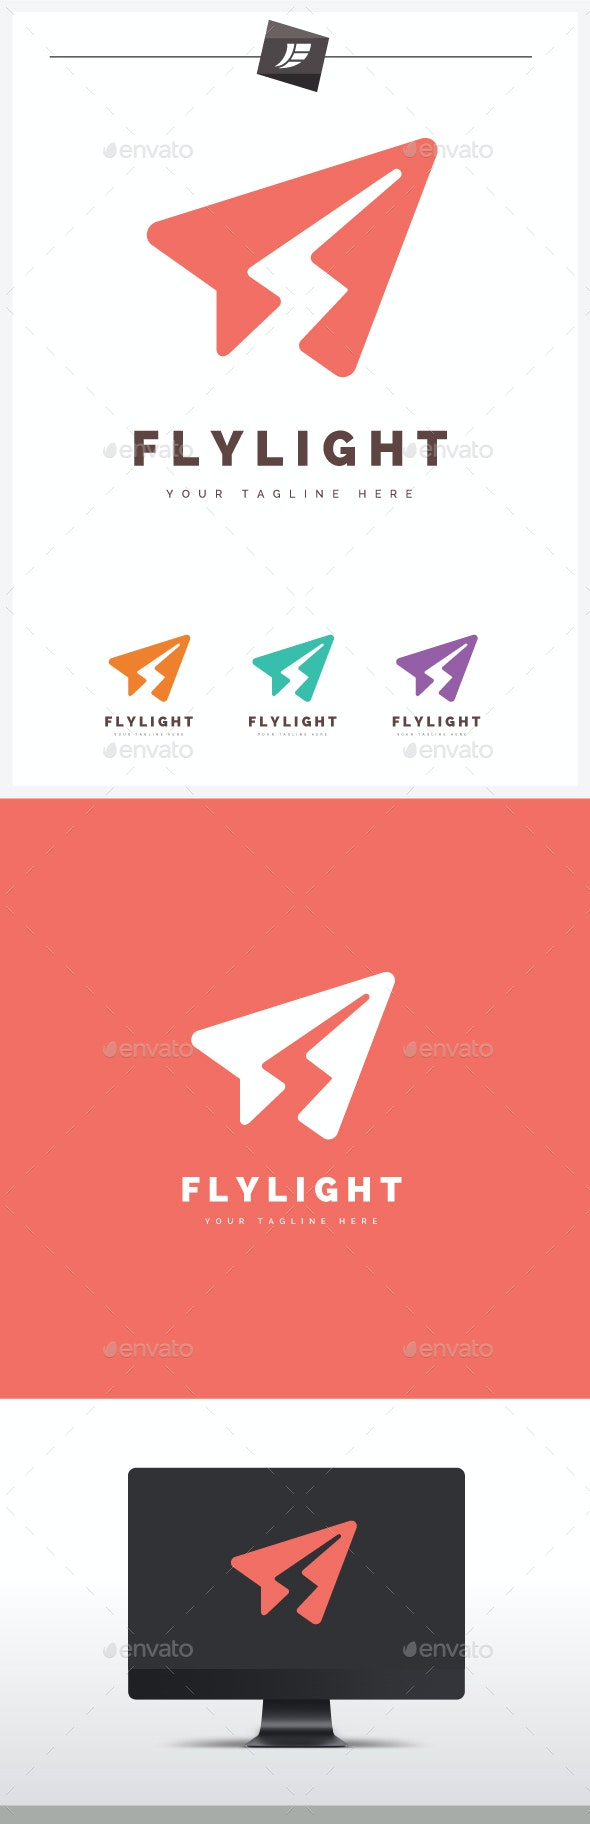 Fly Light Logo - Symbols Logo Templates